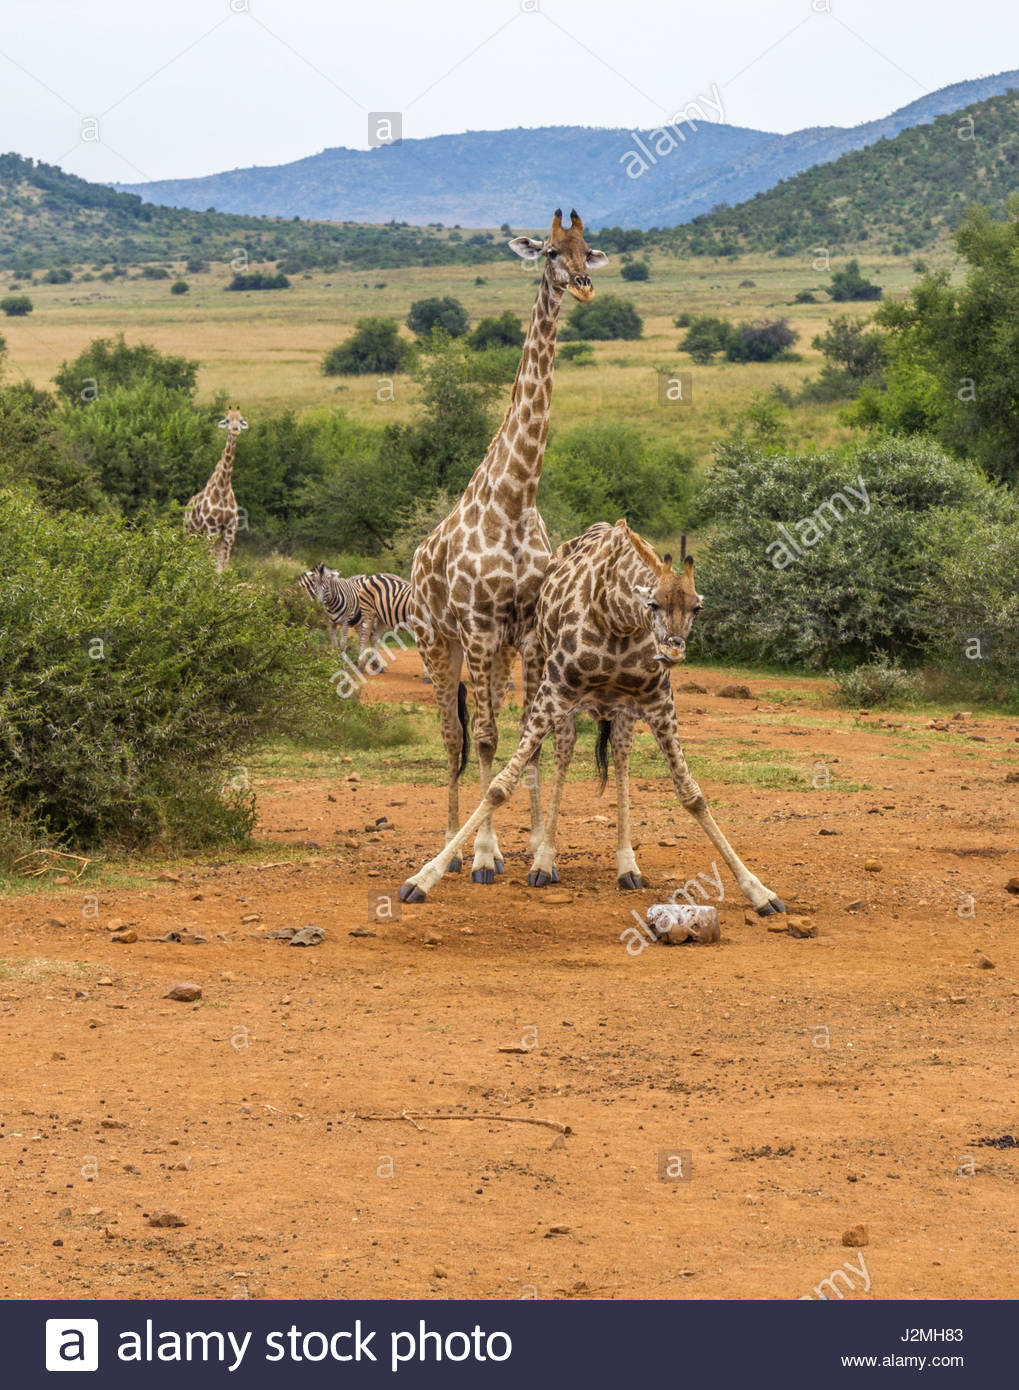 A Giraffe splays its legs to reach a salt-lick in the Pilanesberg National Park. Mineral rich licks are provided - Stock Image